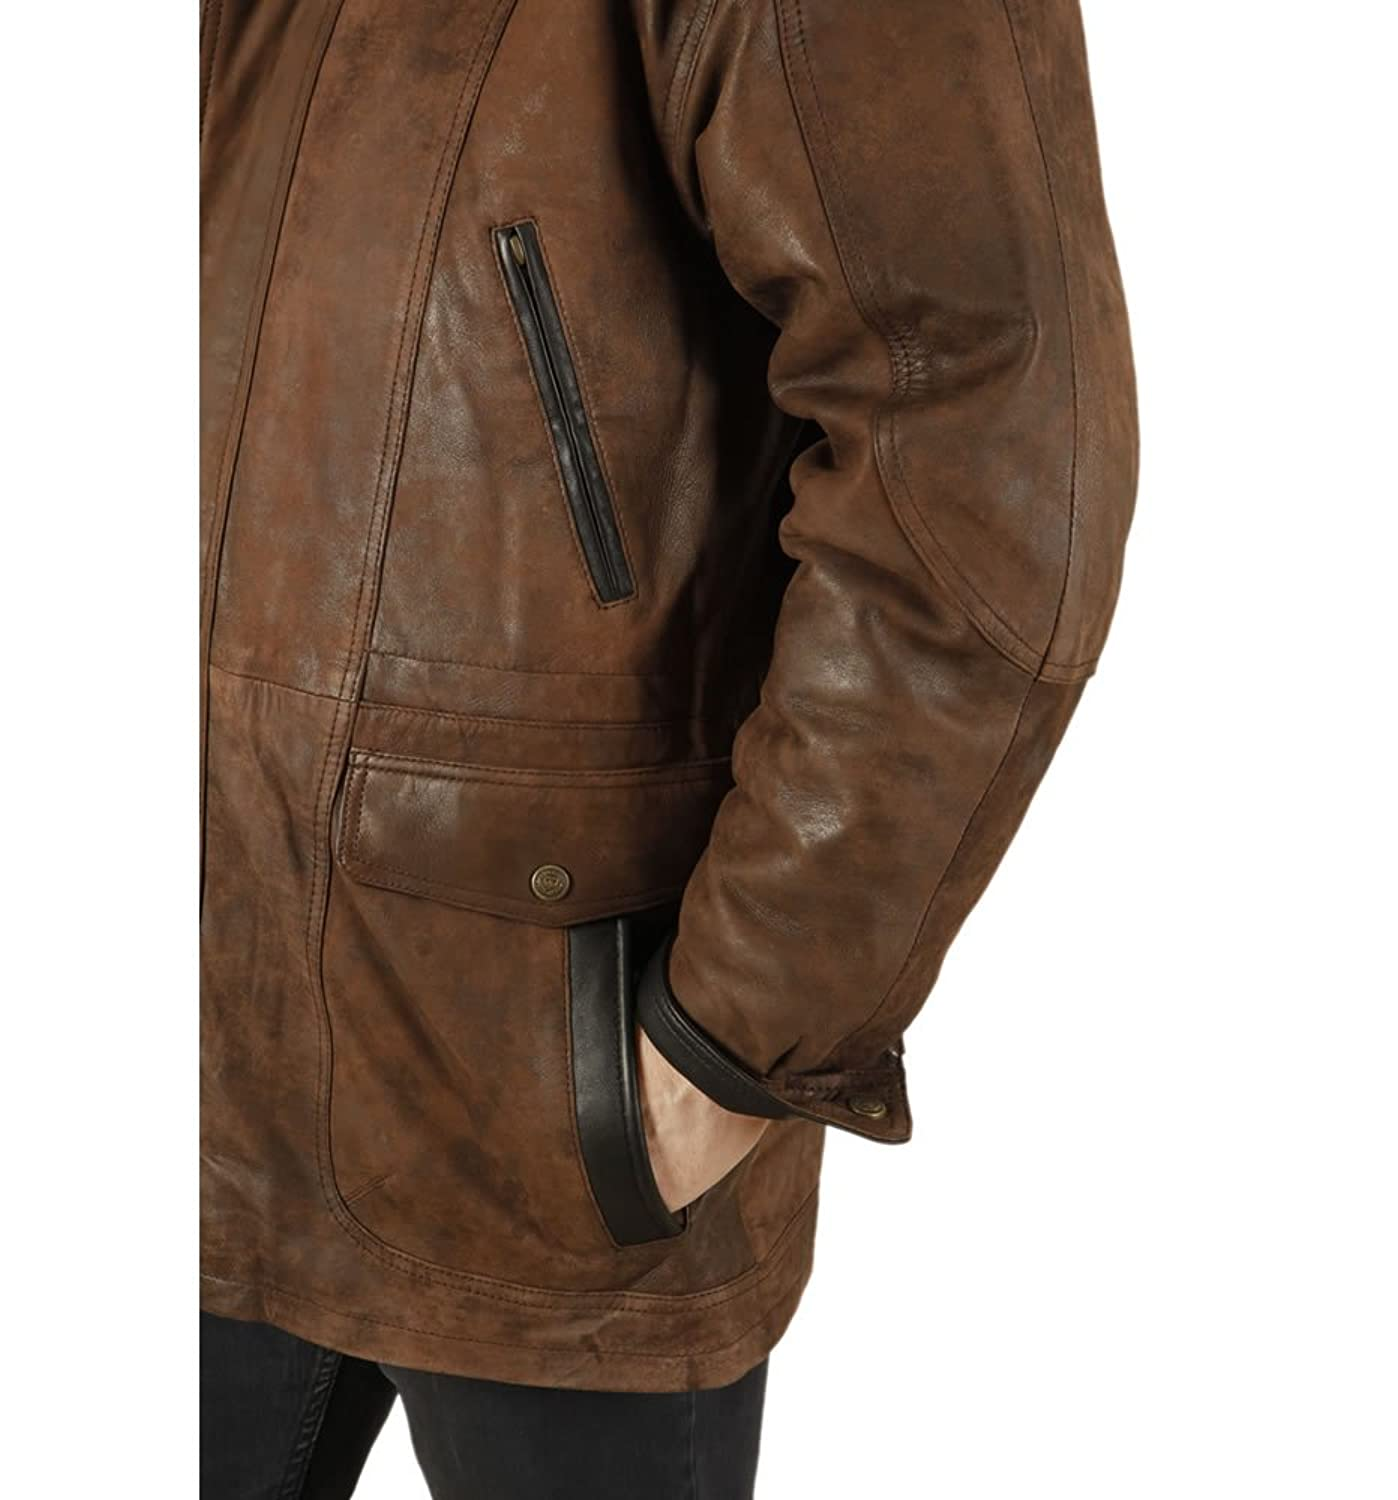 Simons Leather Men's 3/4 Length Buff Leather Parka Leather Coat at